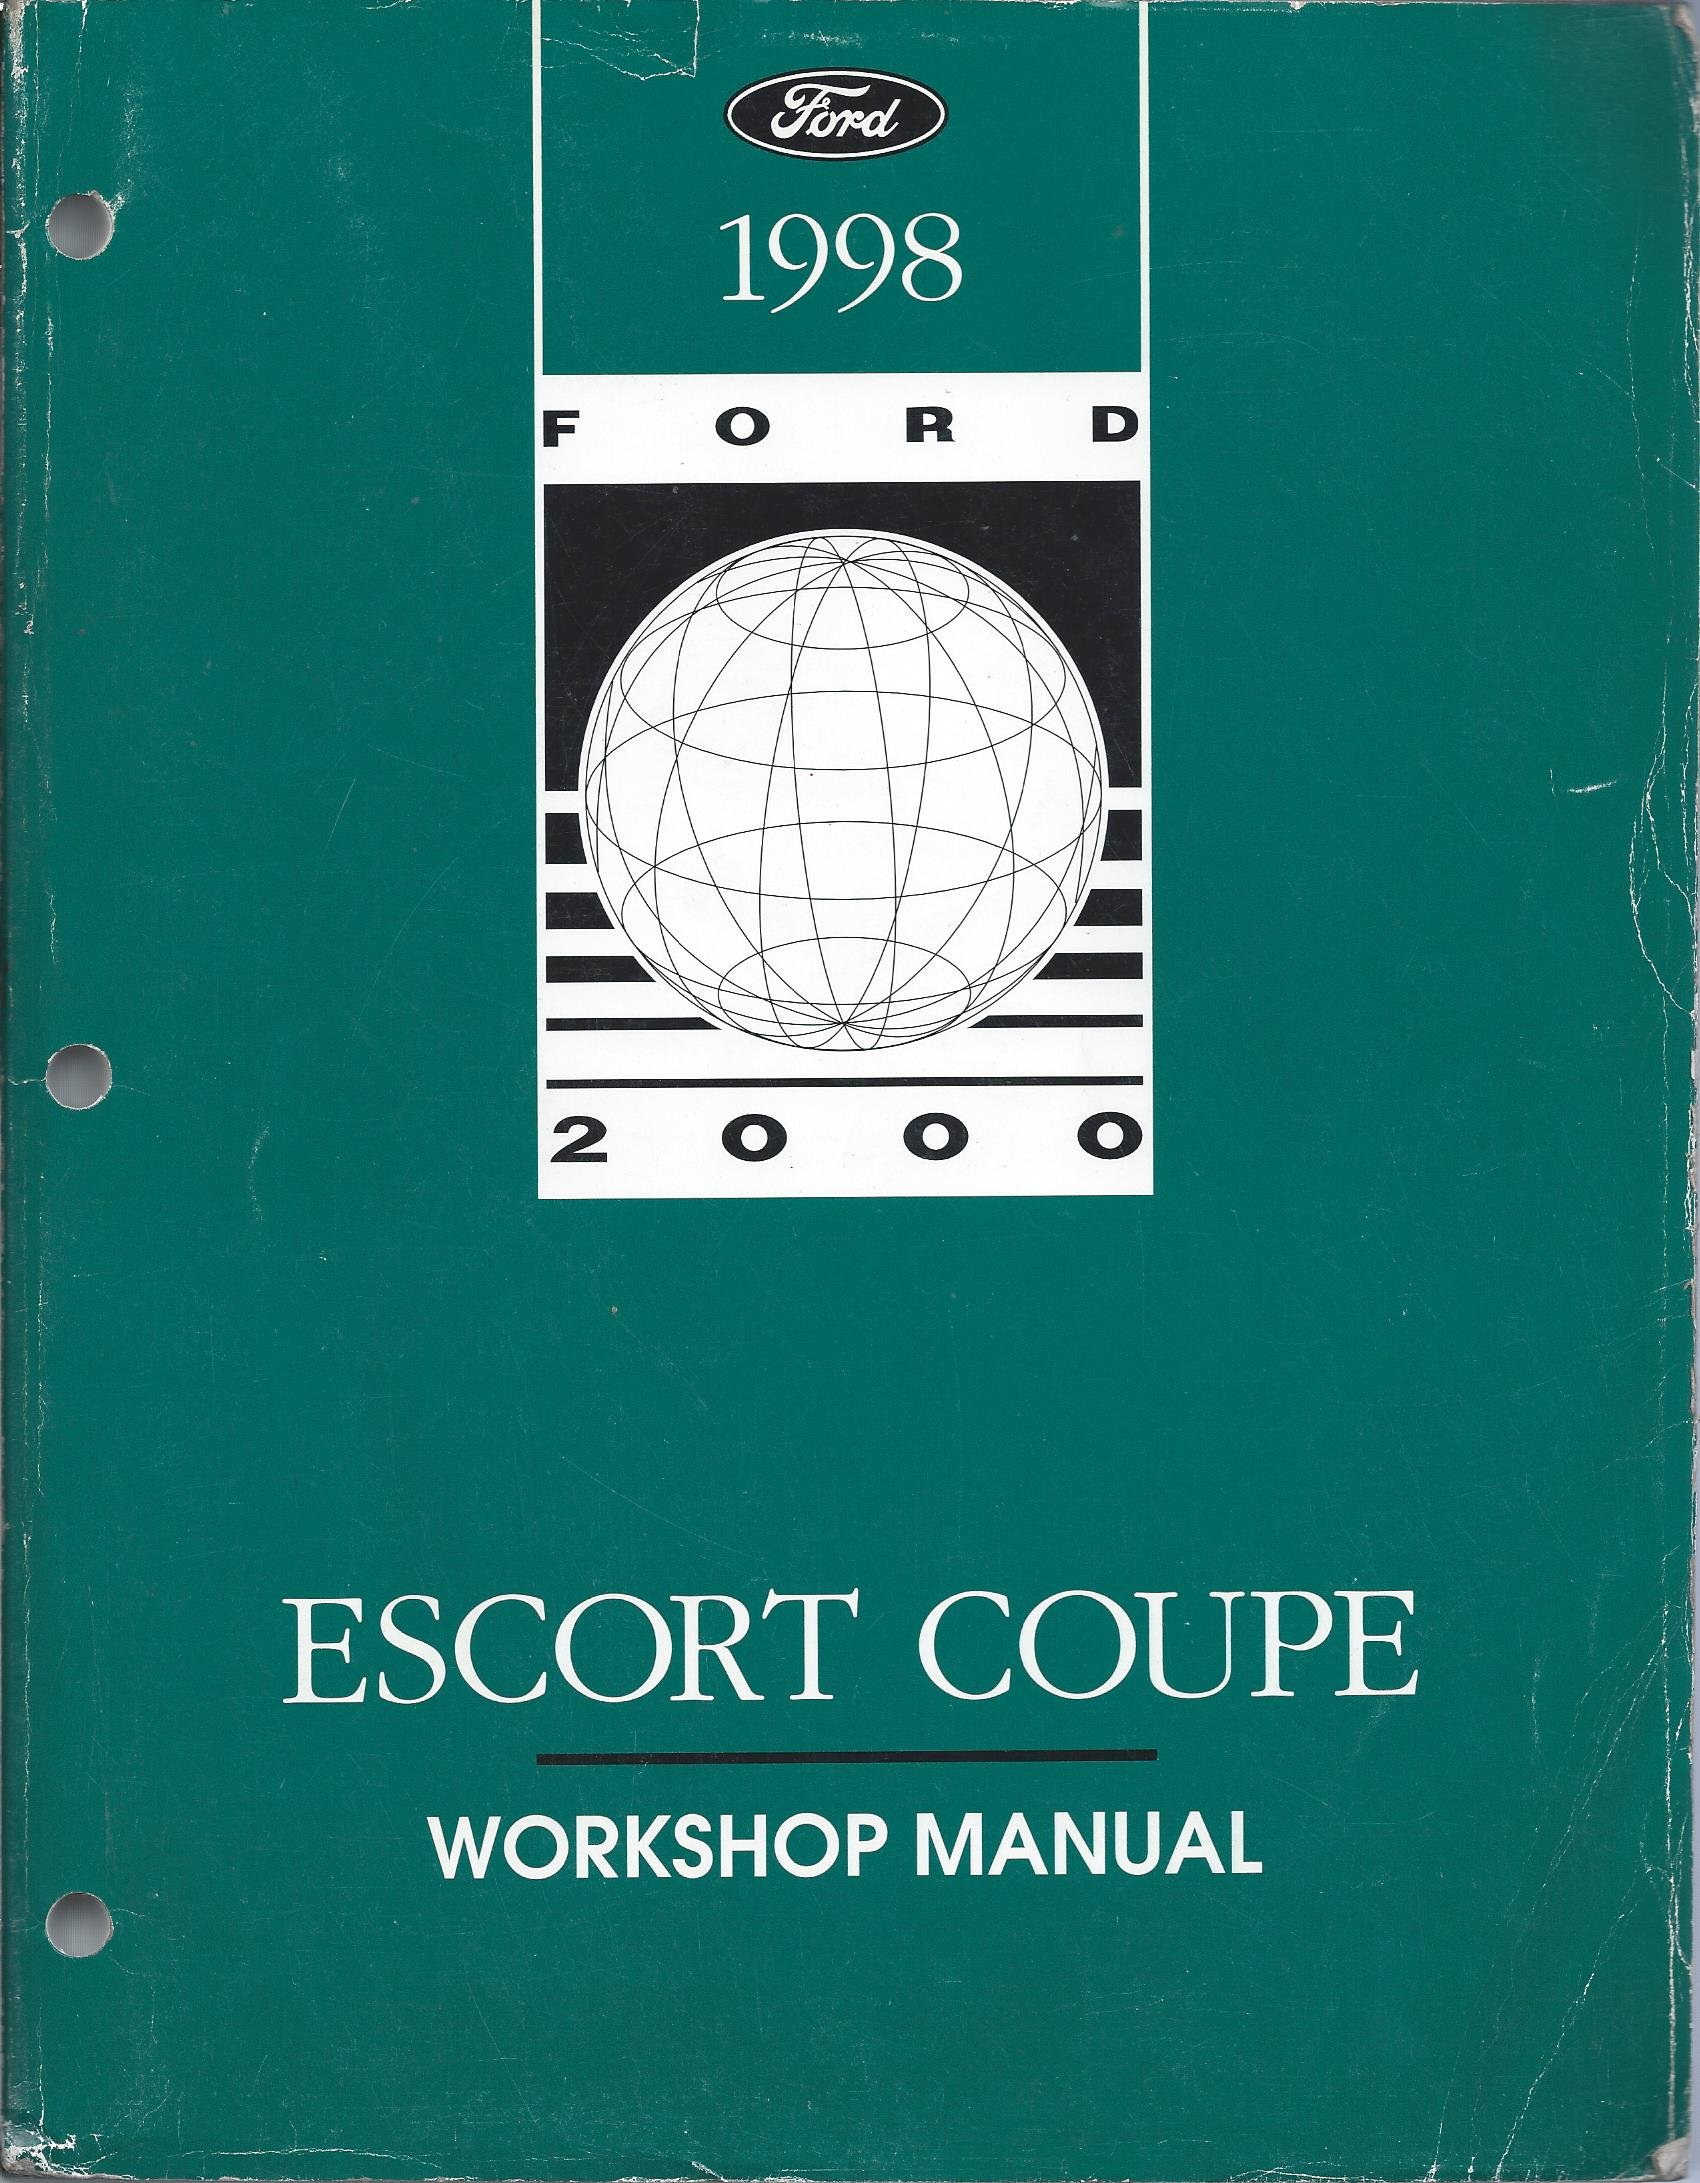 1998 Ford Escort Coupe Workshop Manual (ZX2): Ford Motor Company:  Amazon.com: Books